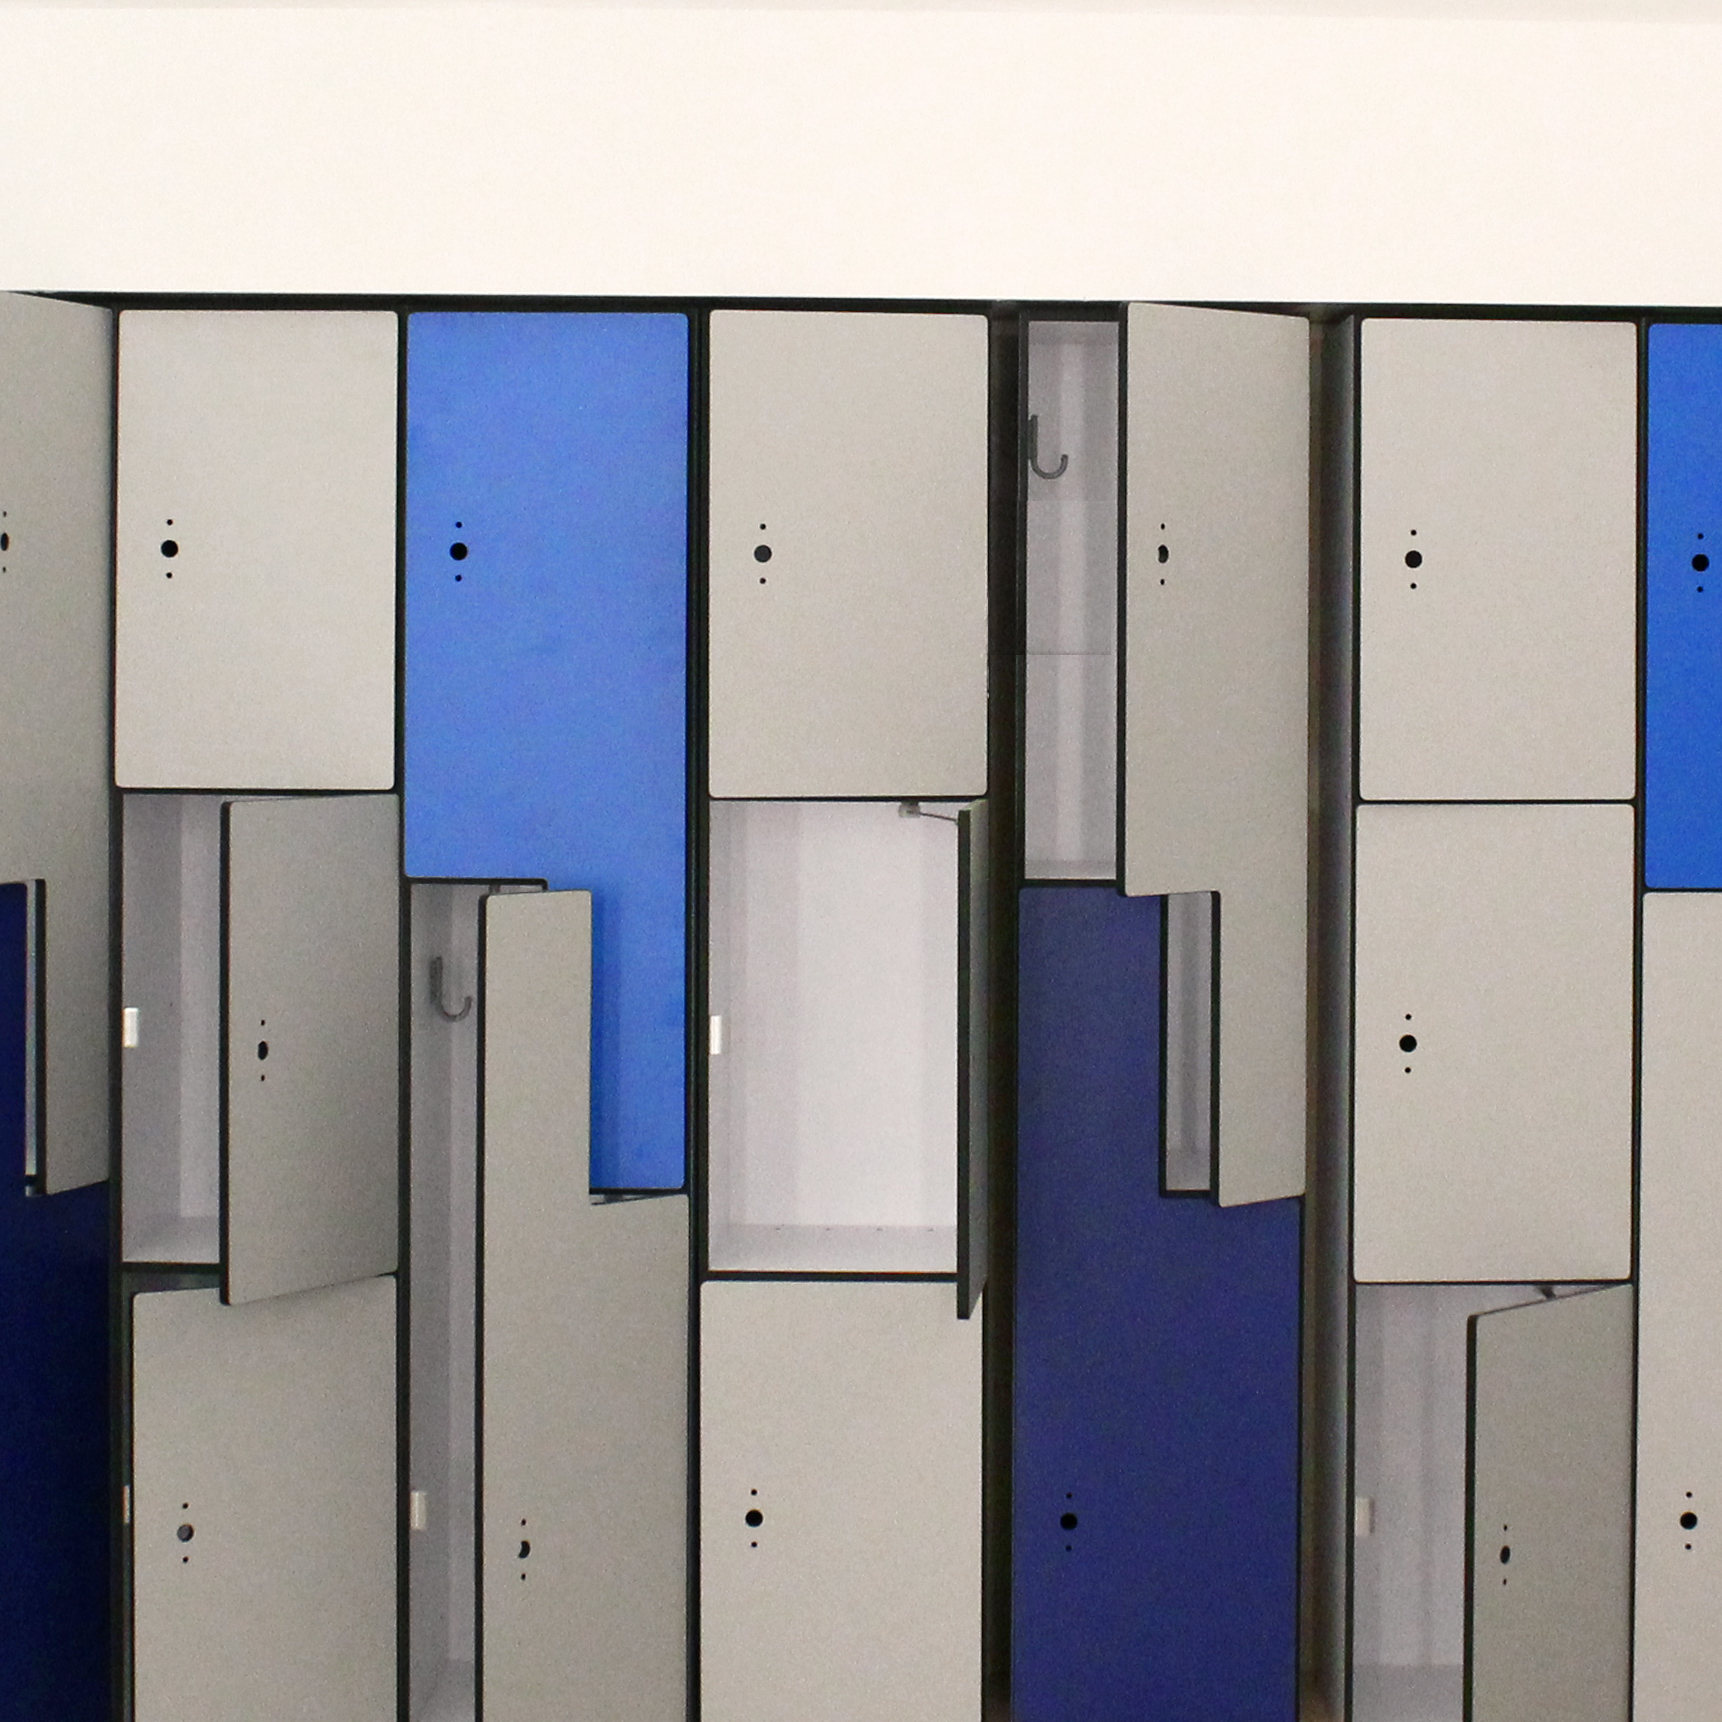 Image of lockers.